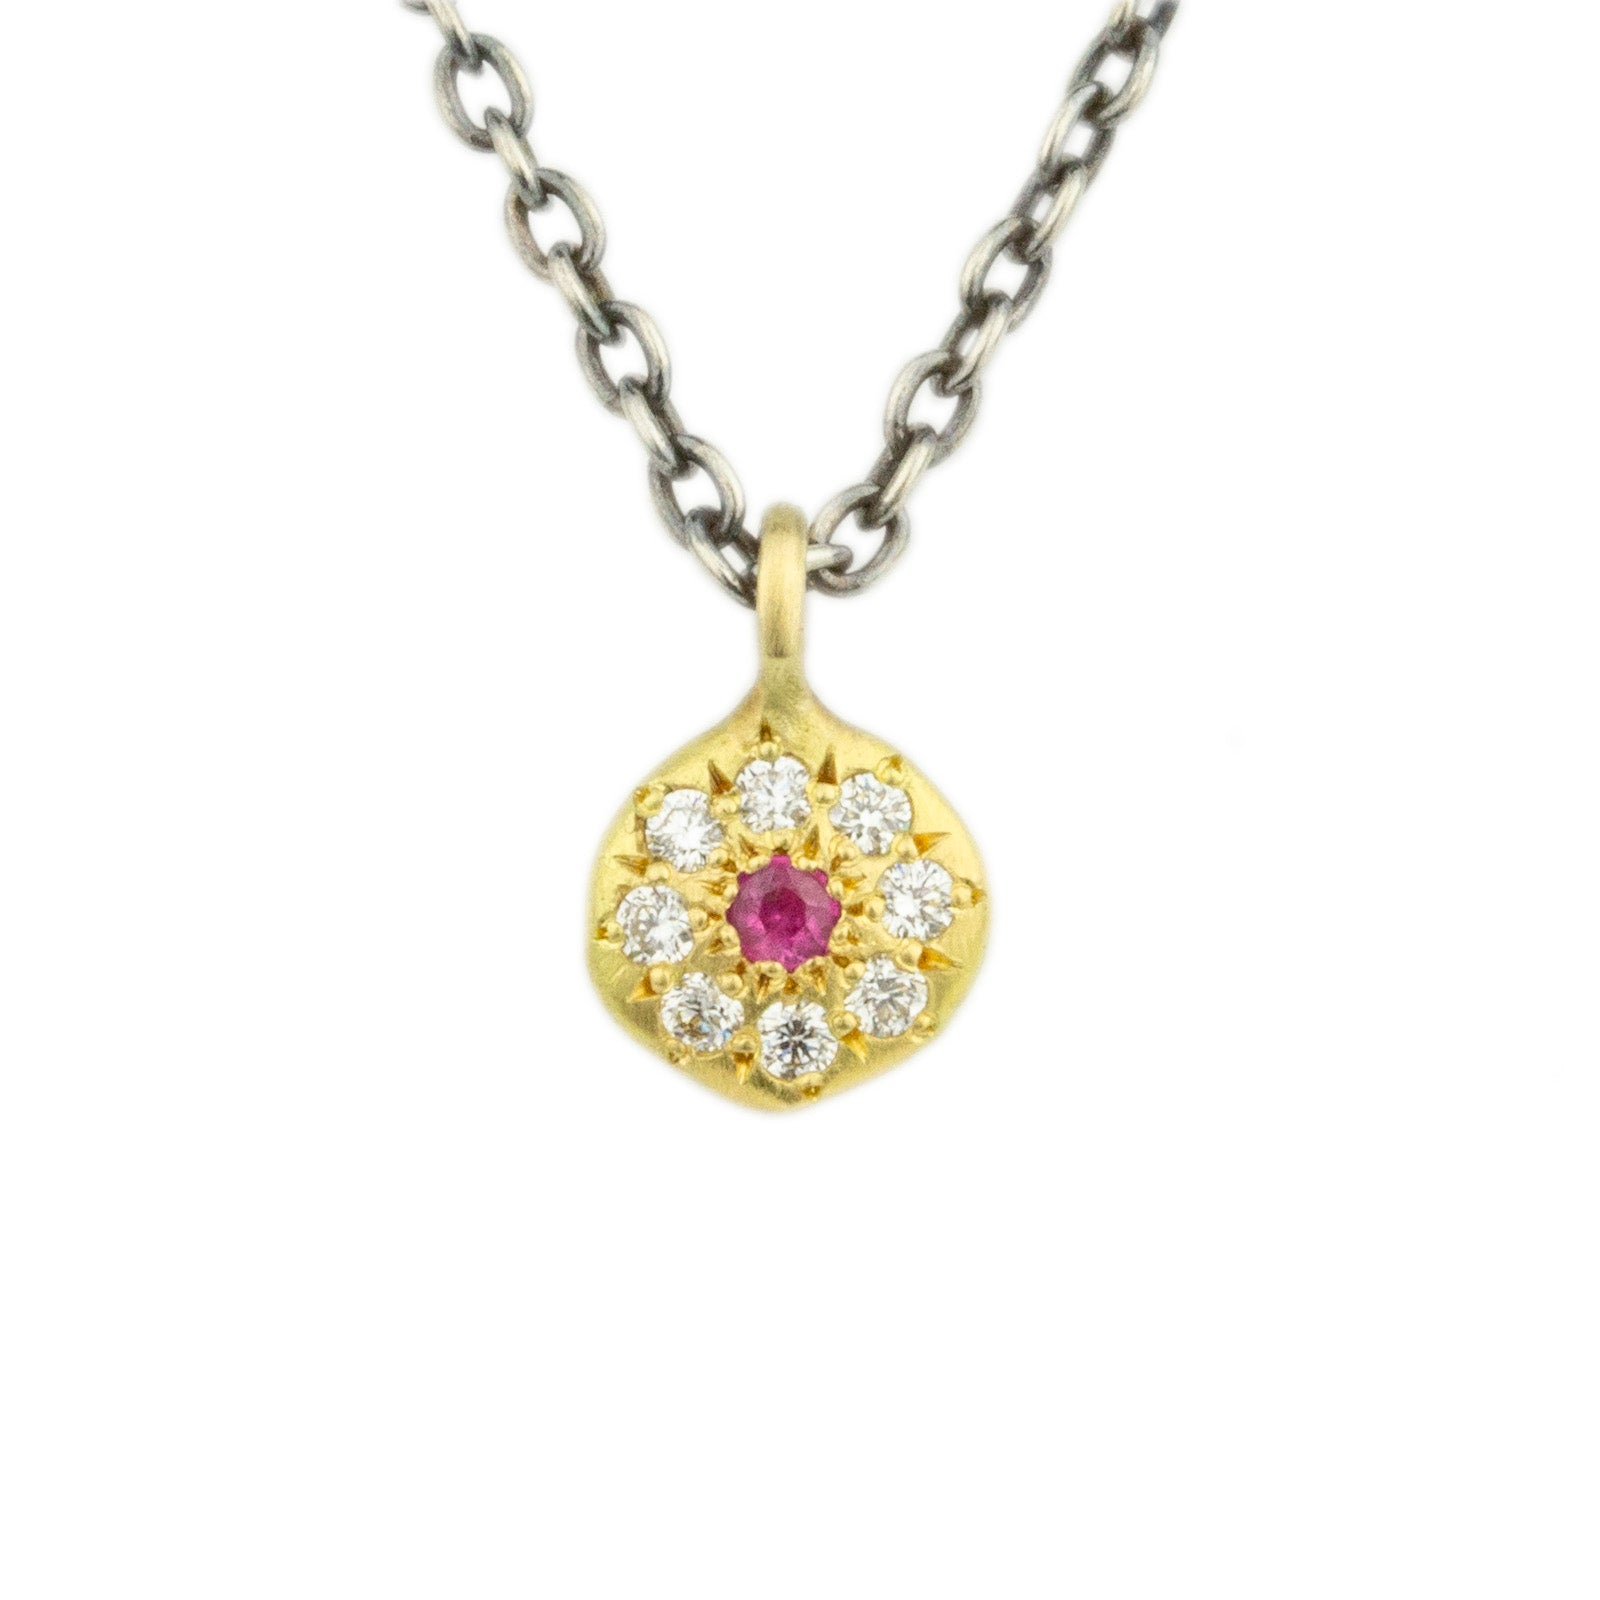 Floret Charm Necklace